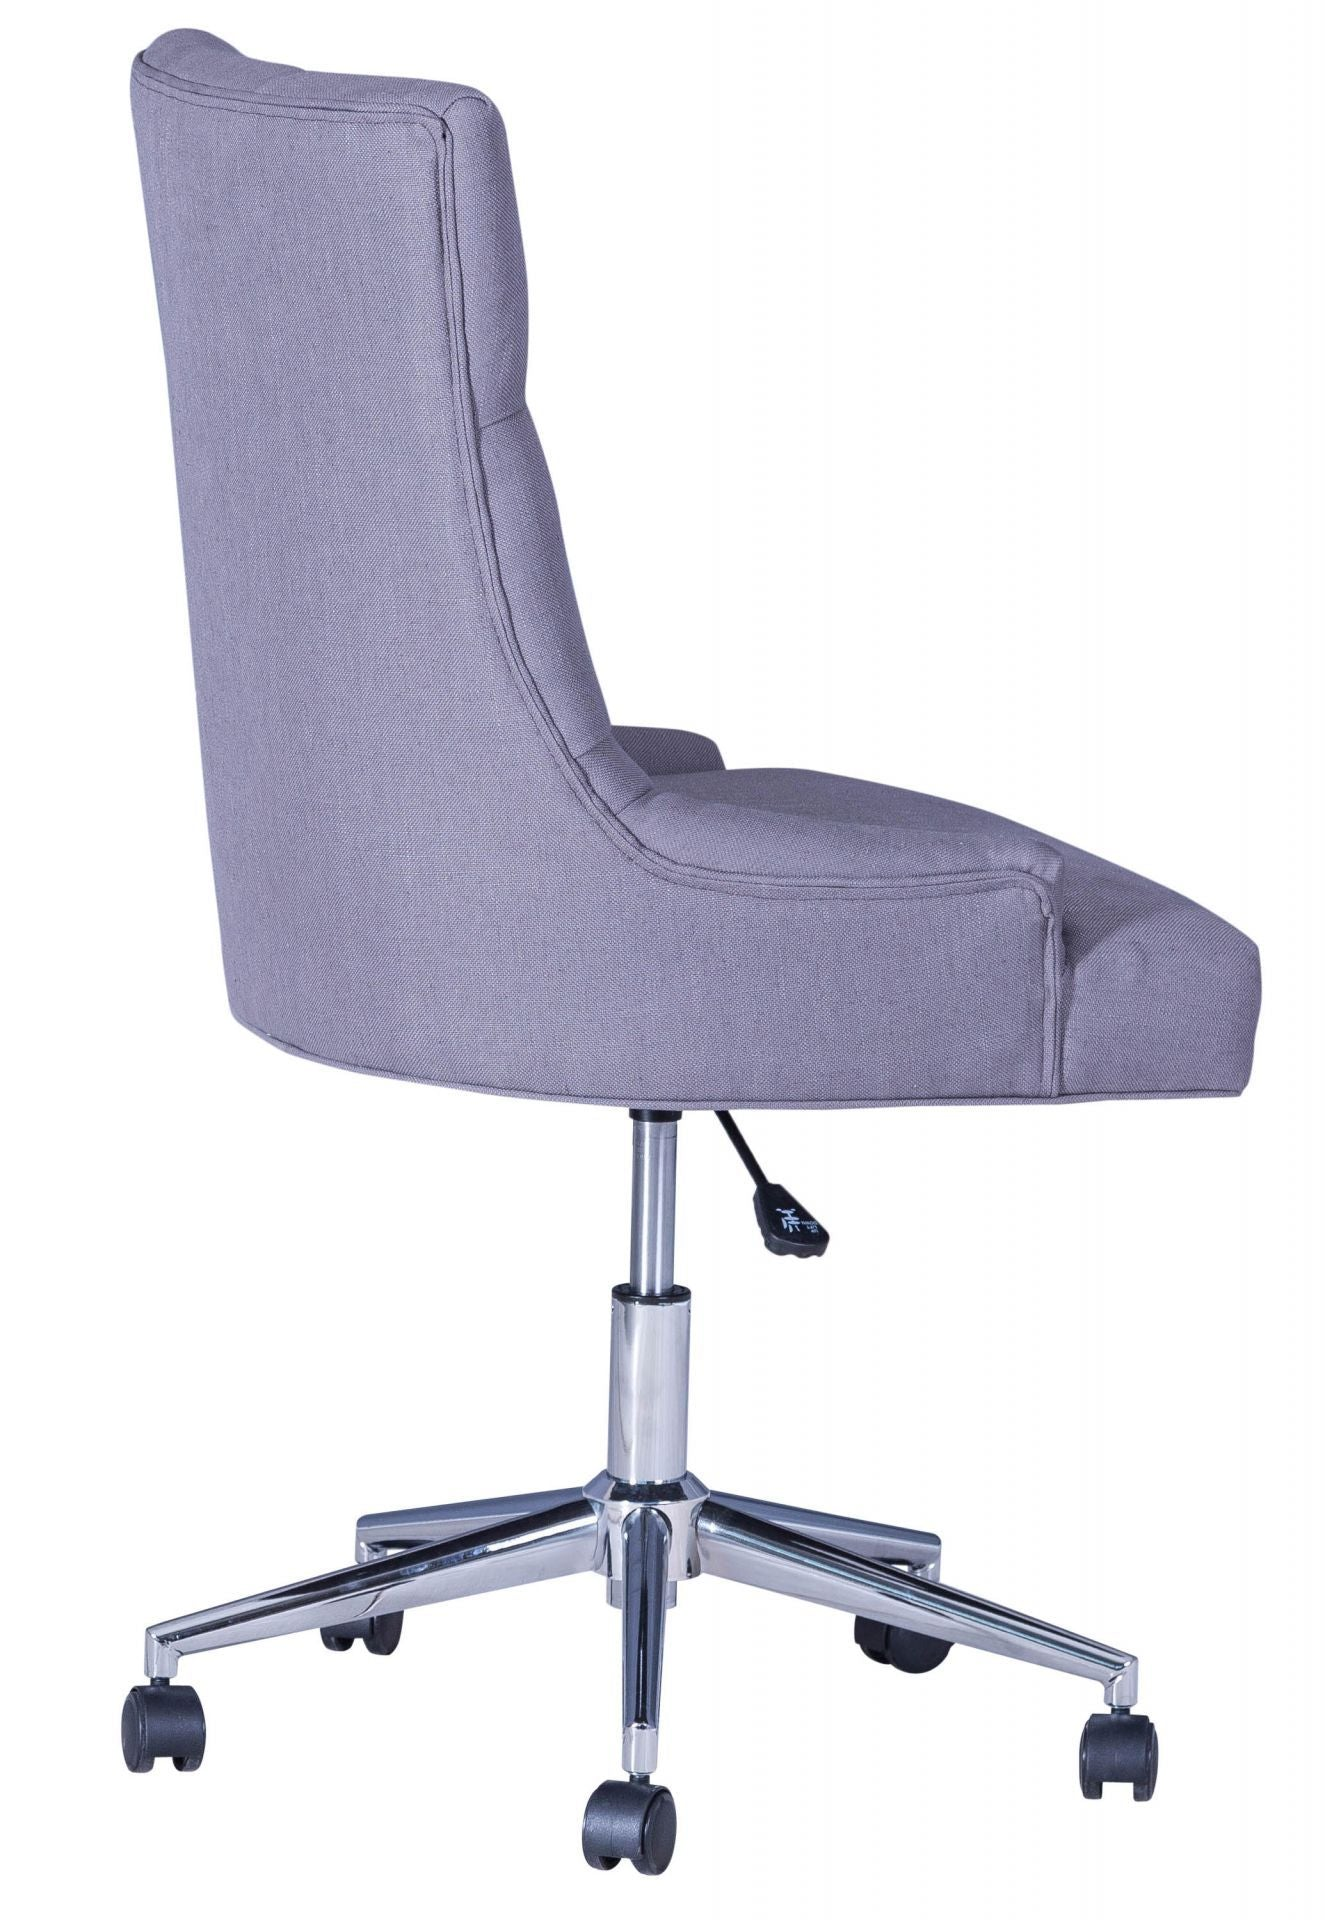 Scuttle Office Wing Backed Button Chair In Grey Fabric